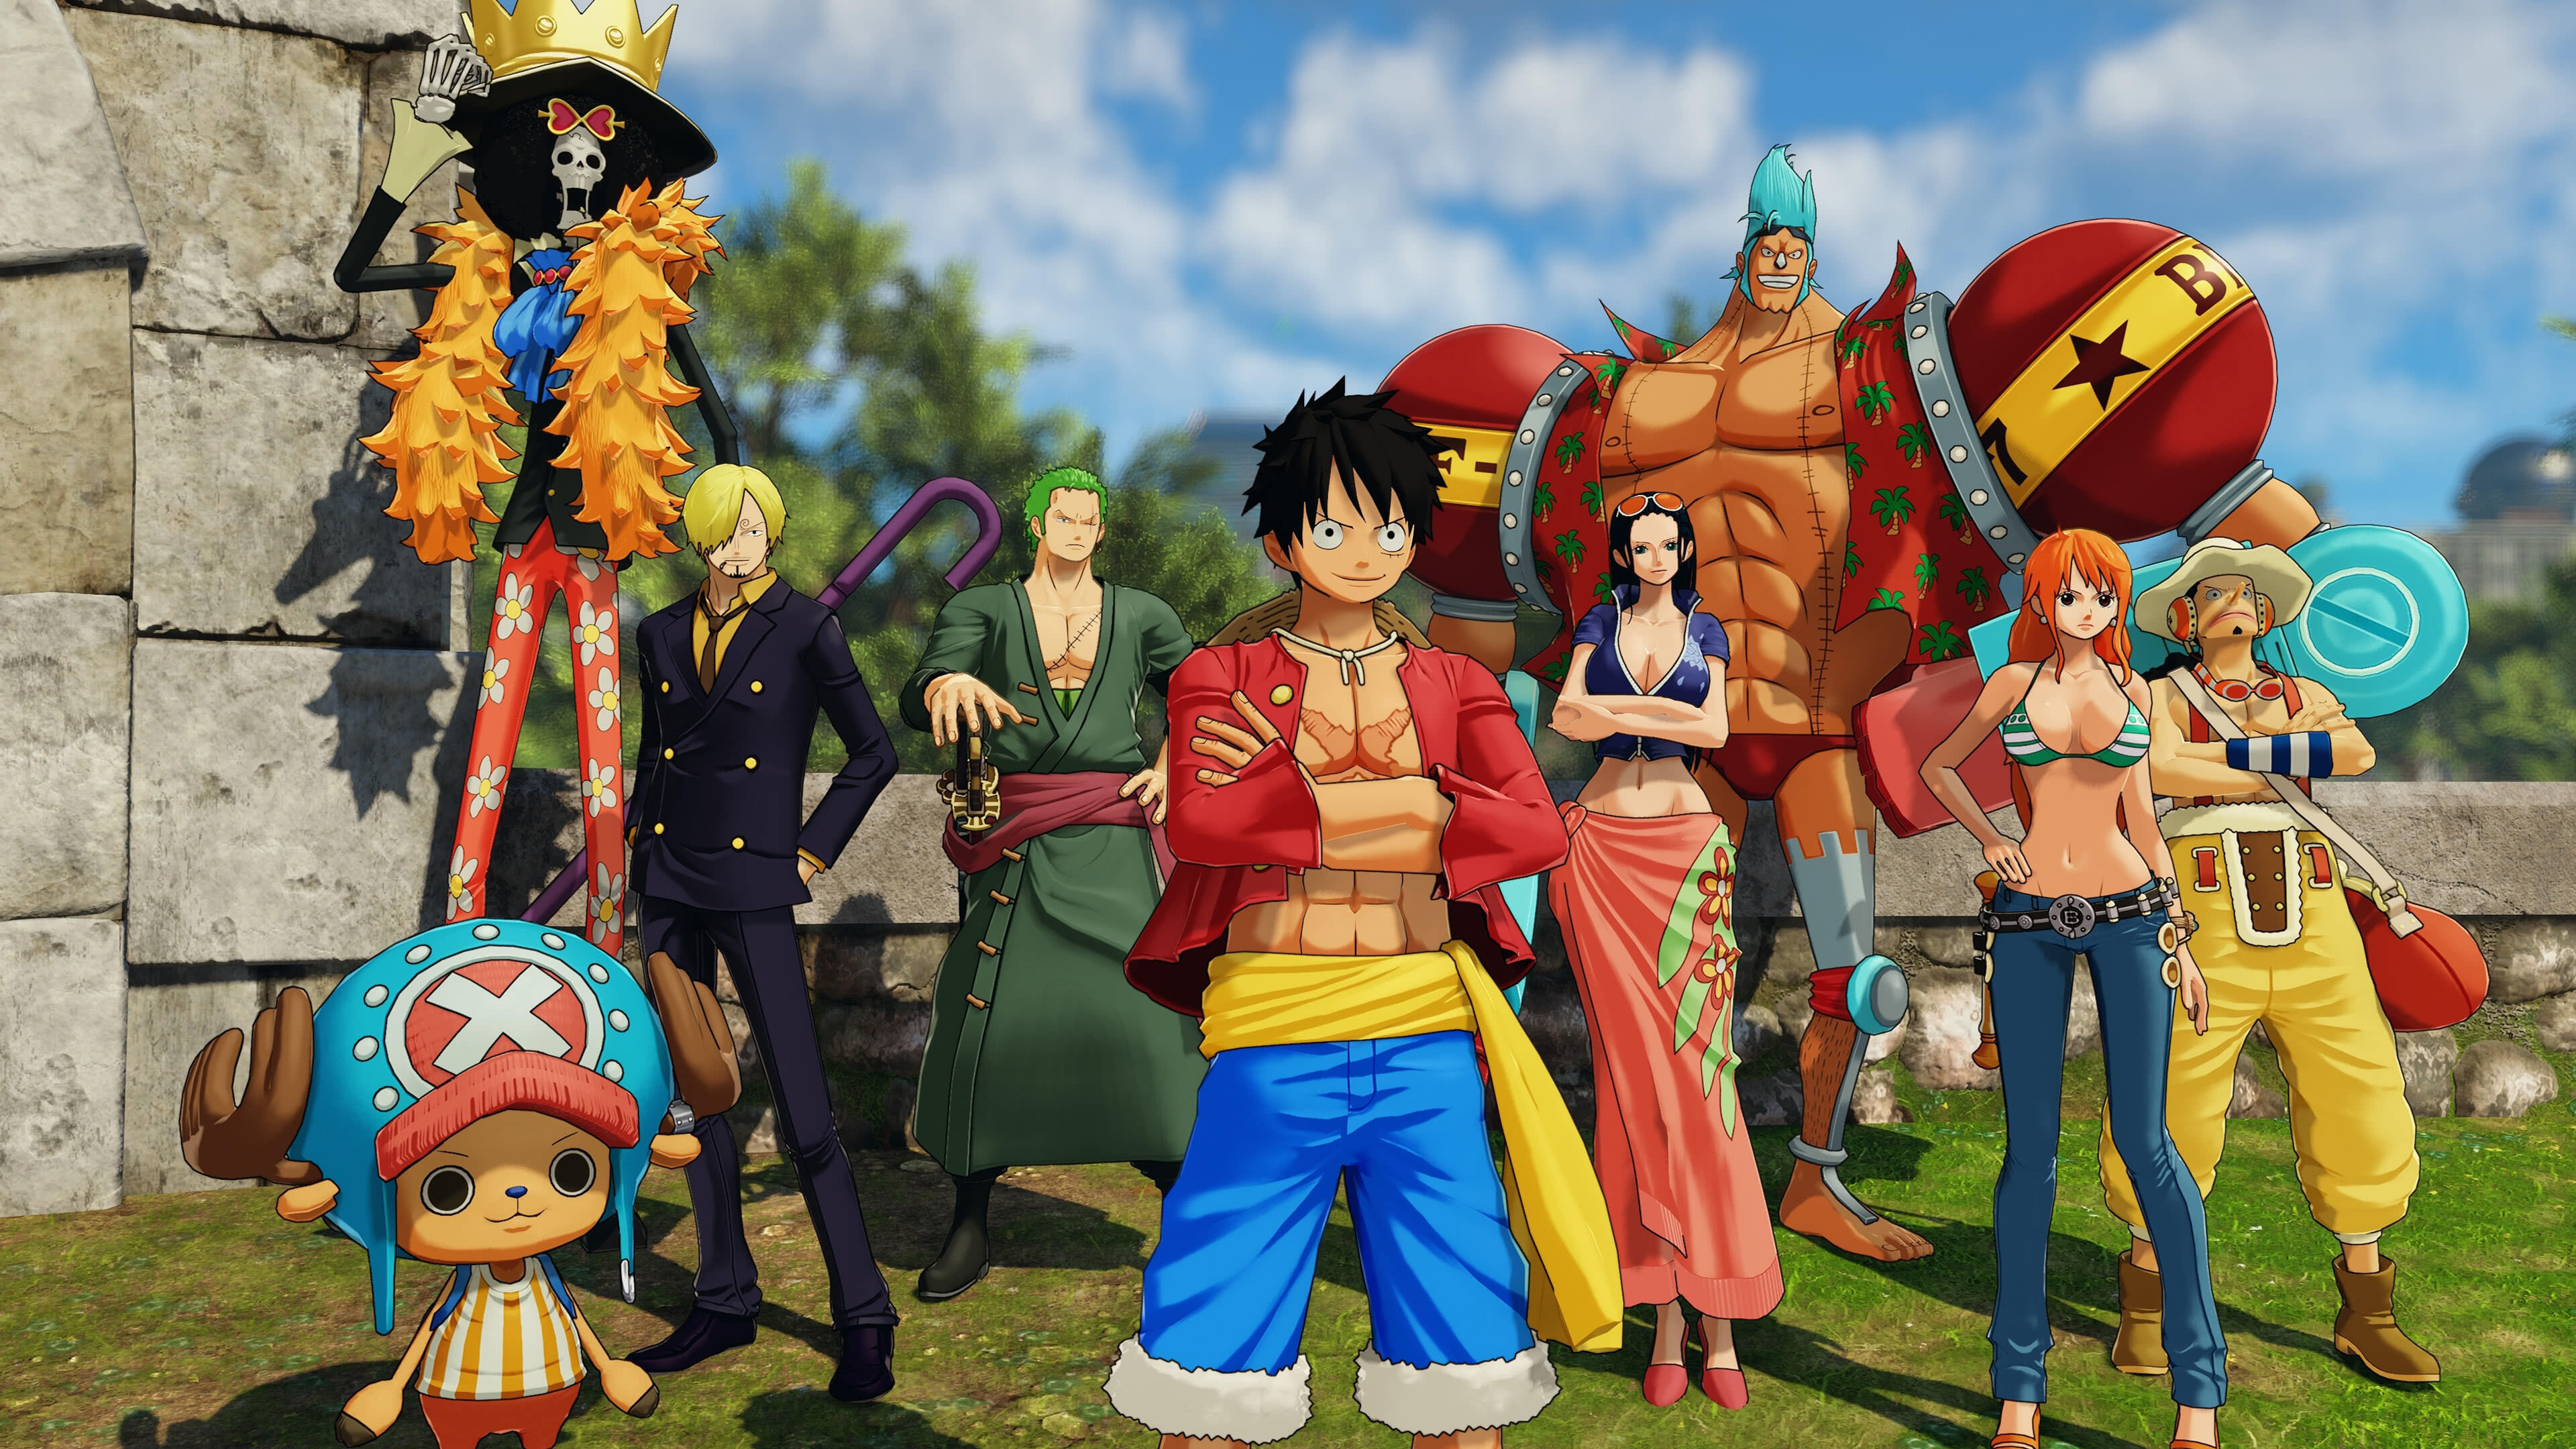 By now, most people are used to hdtv, and a growing number are making the jump to 4k ultra hd tv. One Piece World Seeker Characters UHD 4K Wallpaper   Pixelz